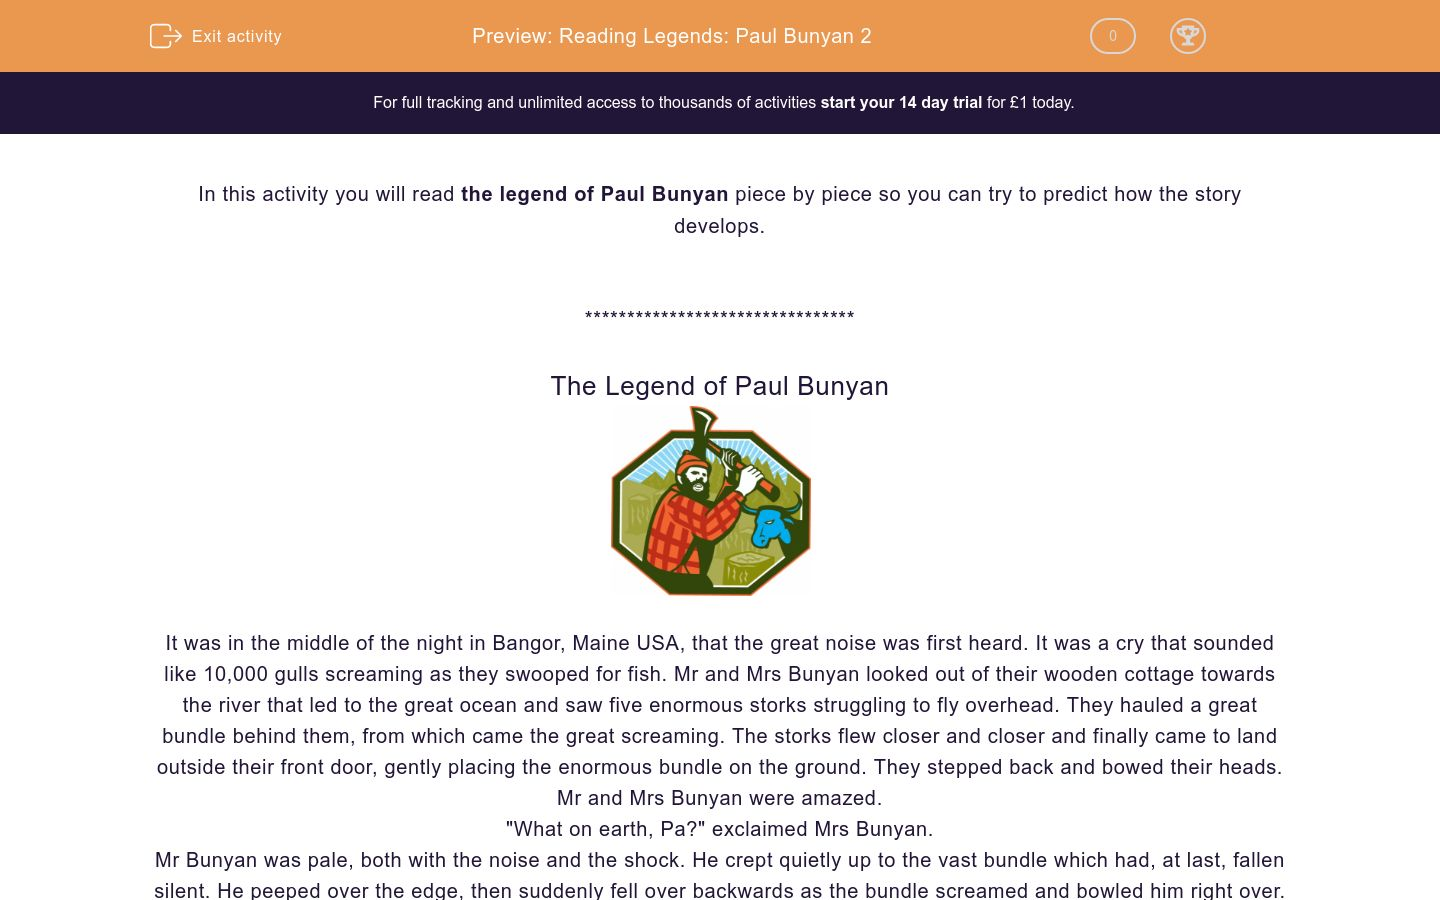 'Reading Legends: Paul Bunyan 2' worksheet